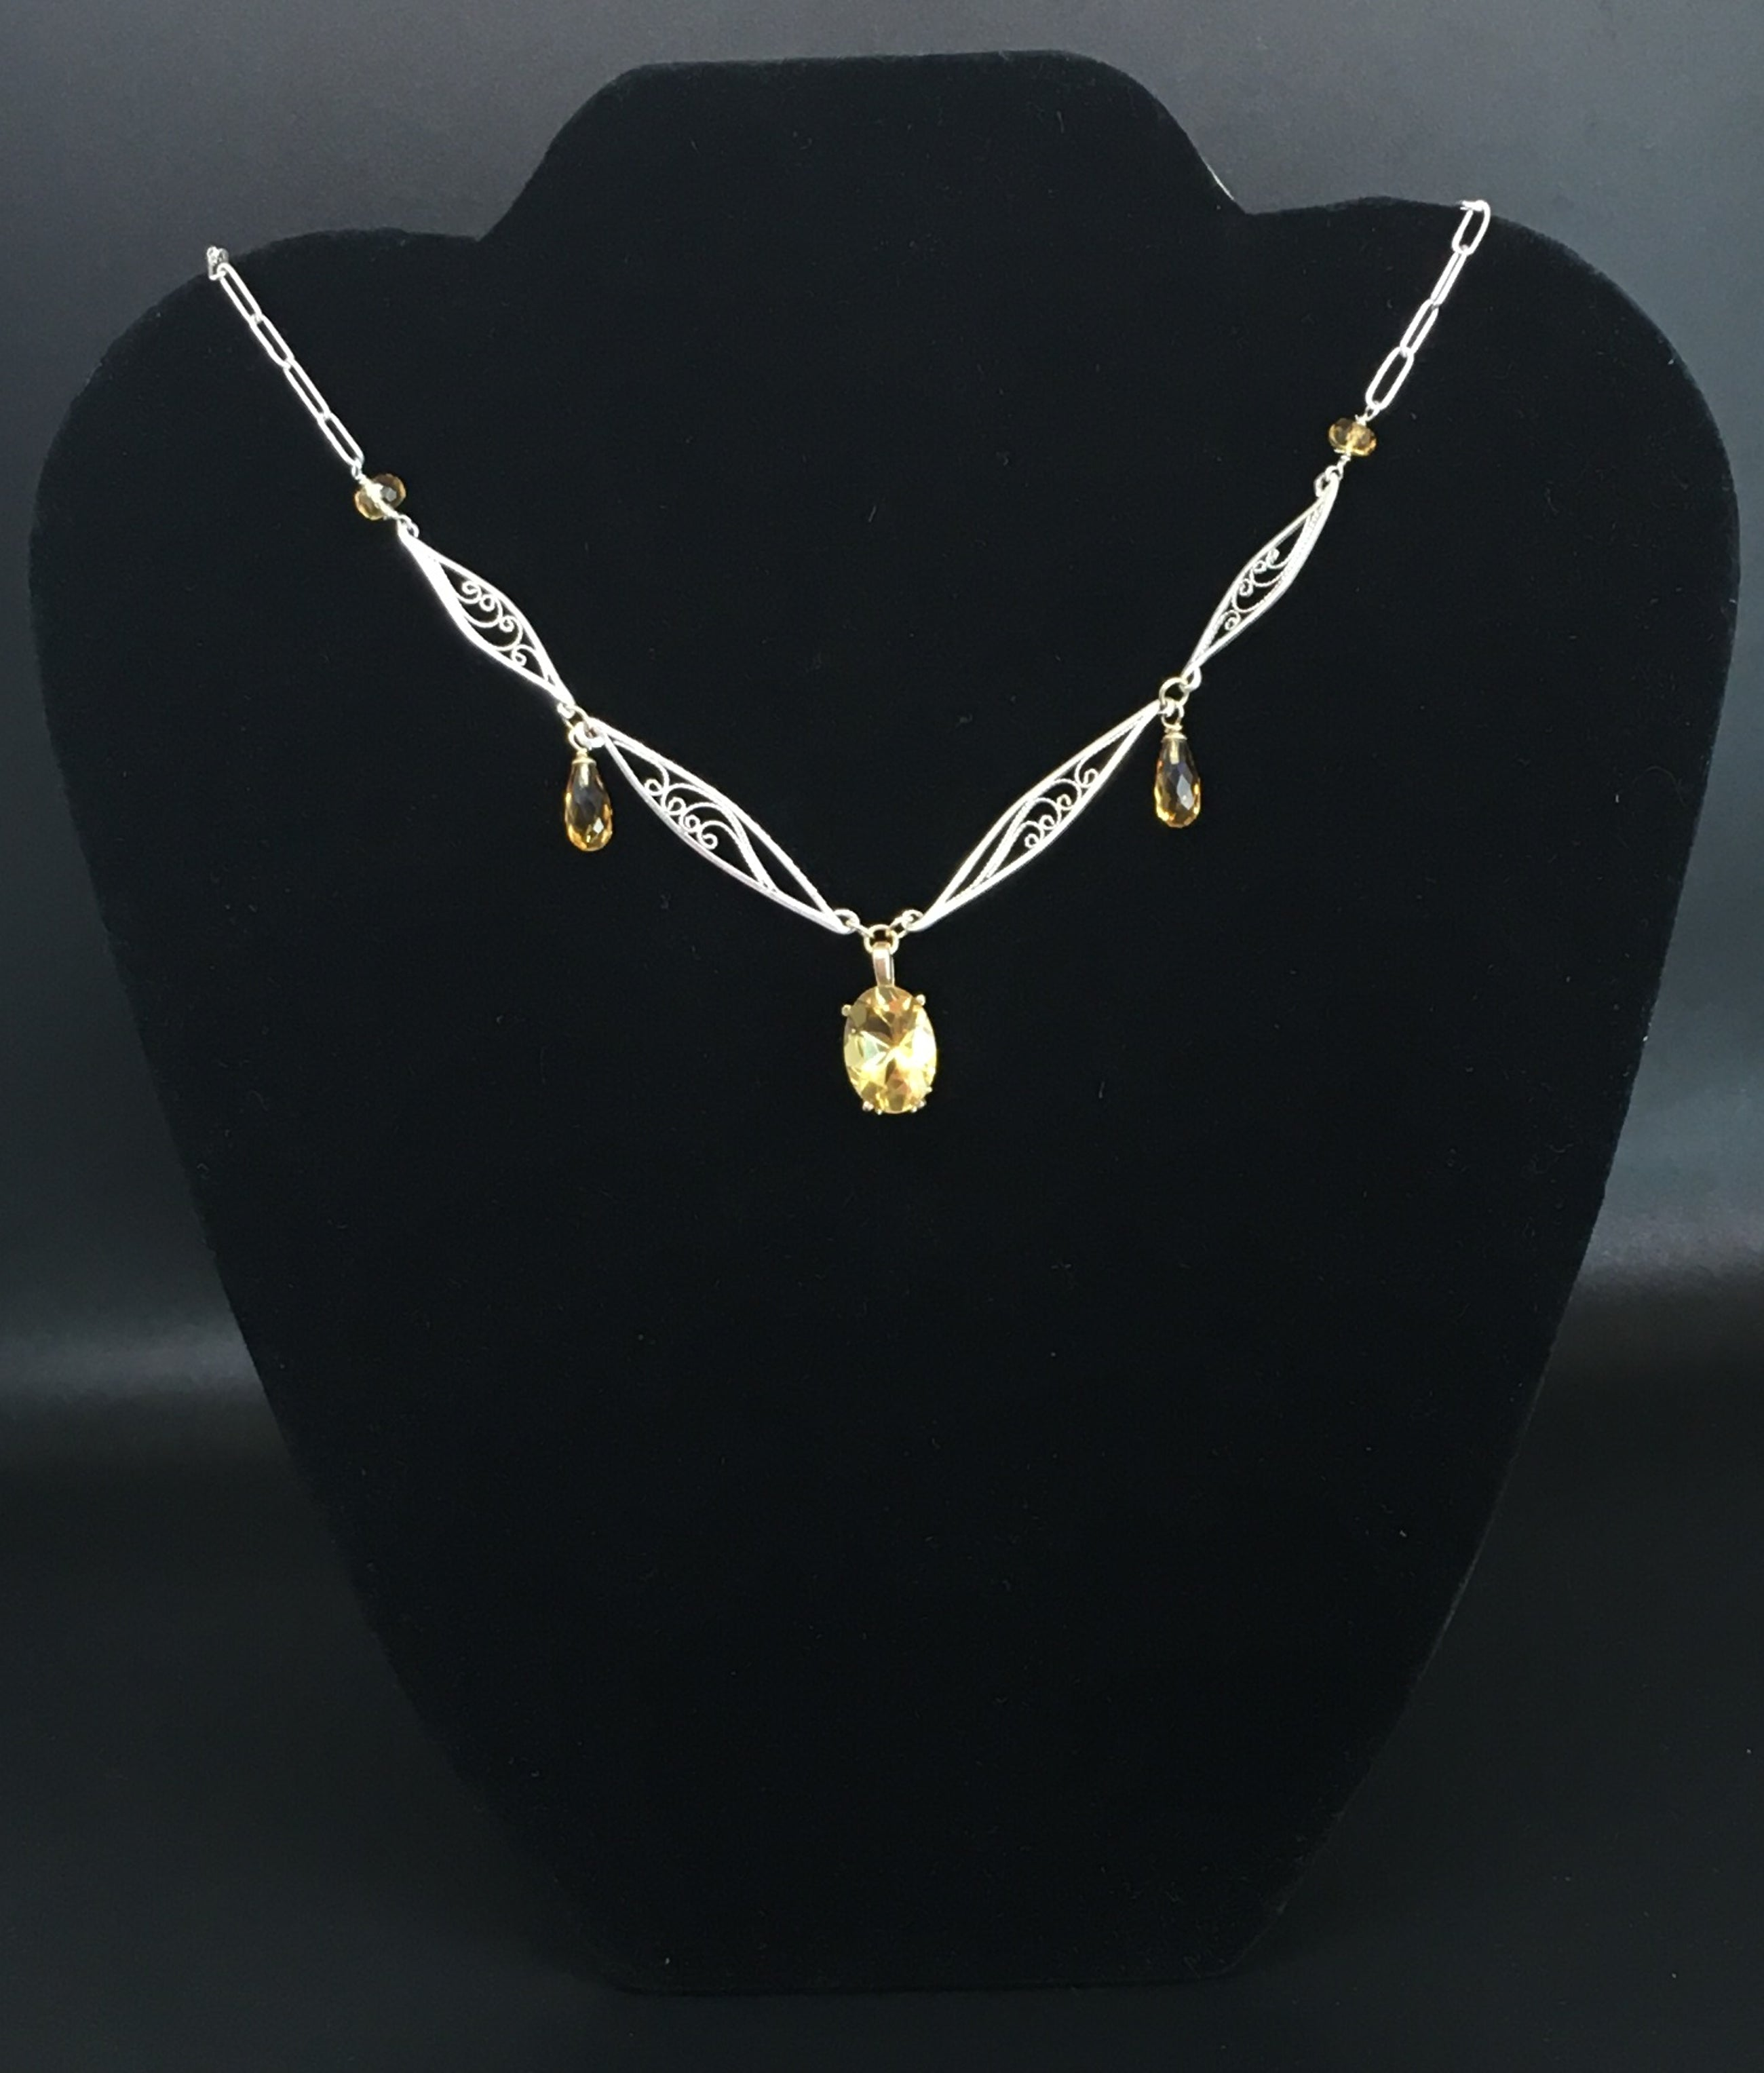 Handmade Fiigree Necklace with Citrine in Silver and 14K Yellow Gold